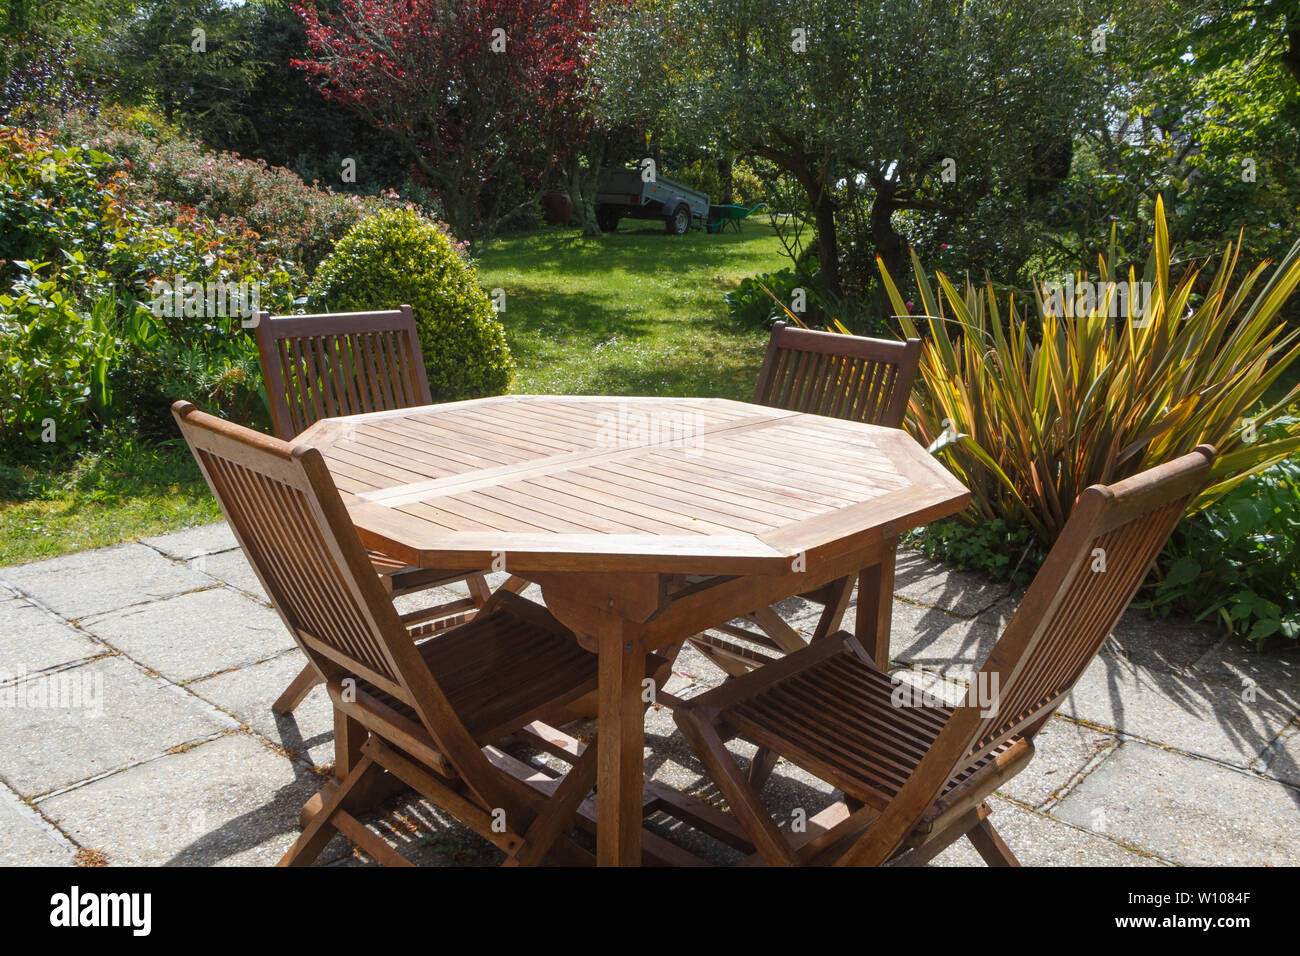 Wooden Garden Furniture Stock Photos Wooden Garden Furniture